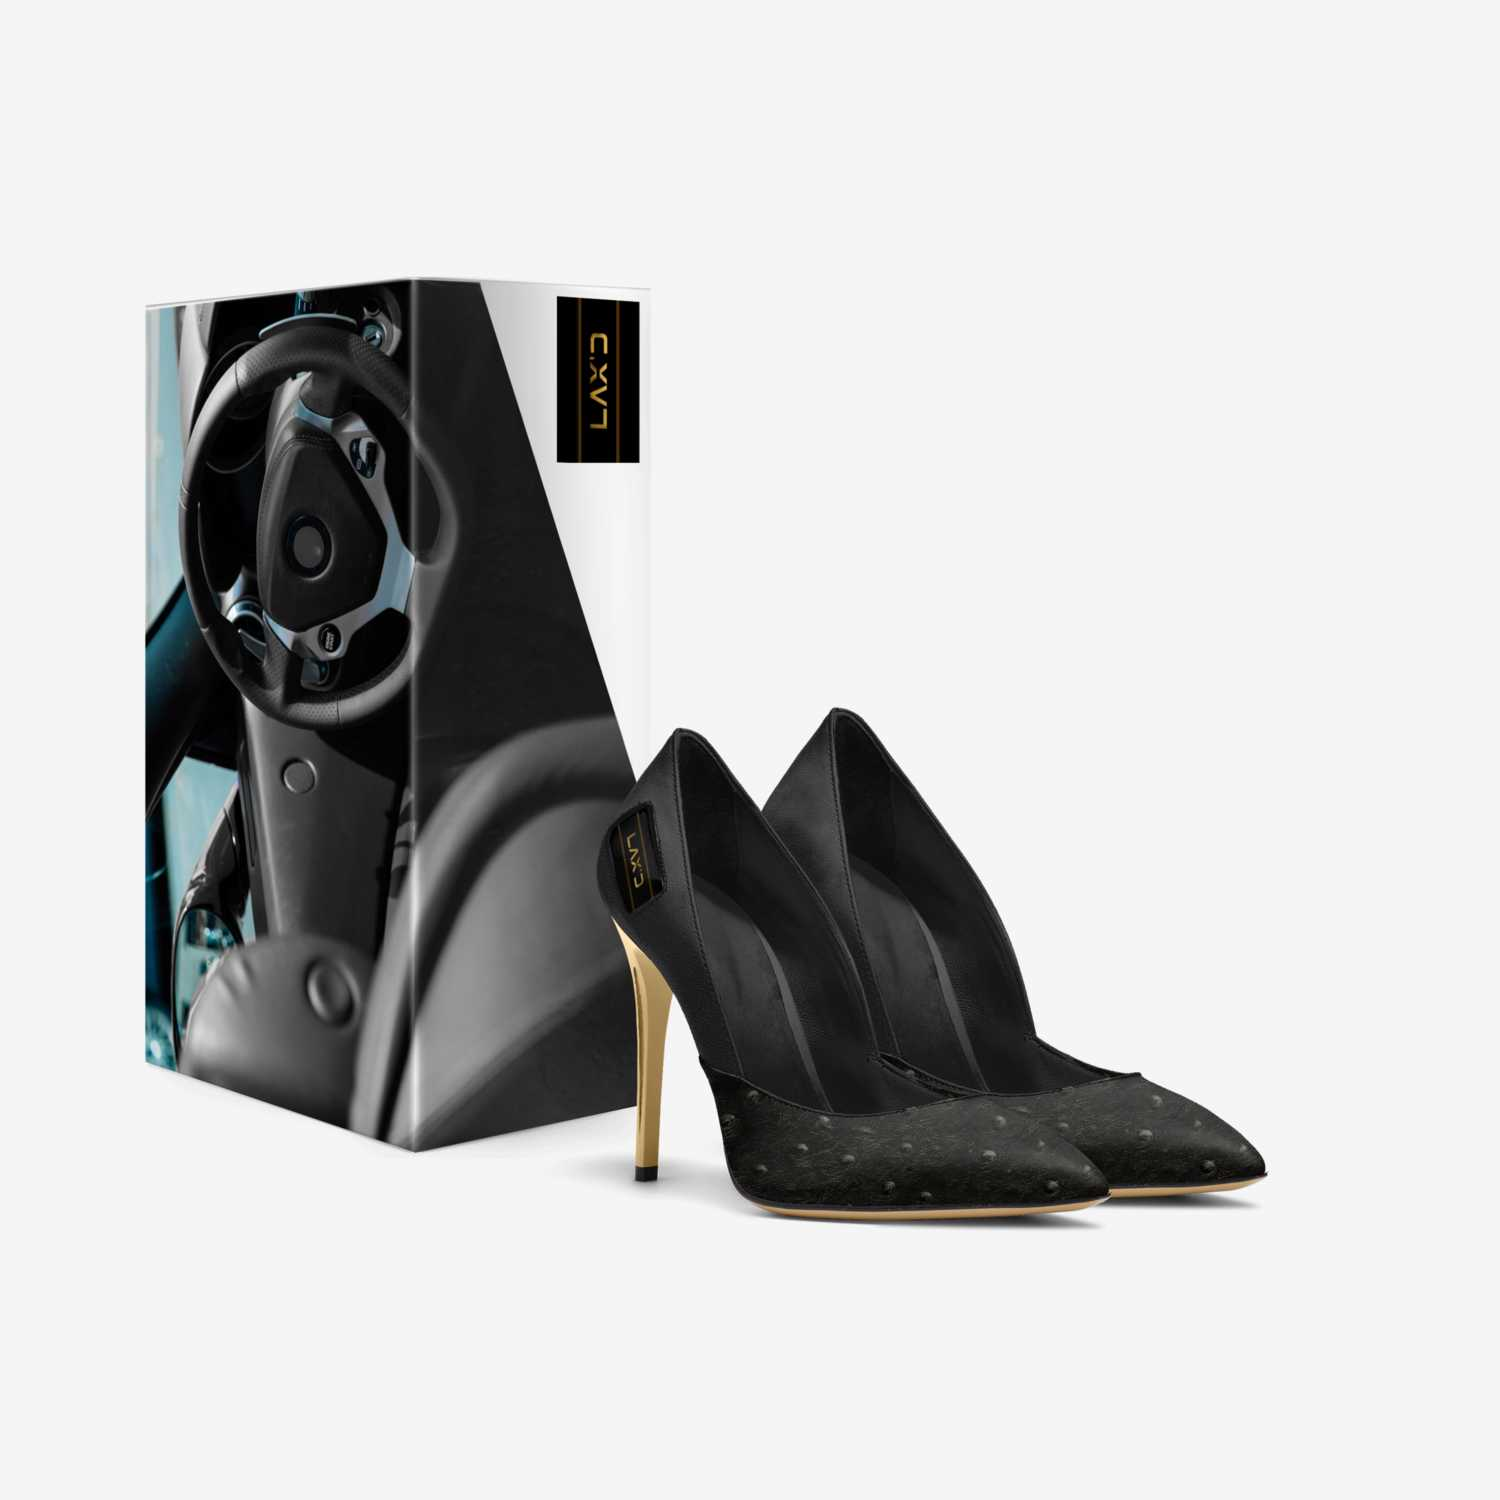 Luxe Heel custom made in Italy shoes by Rachel Cash | Box view